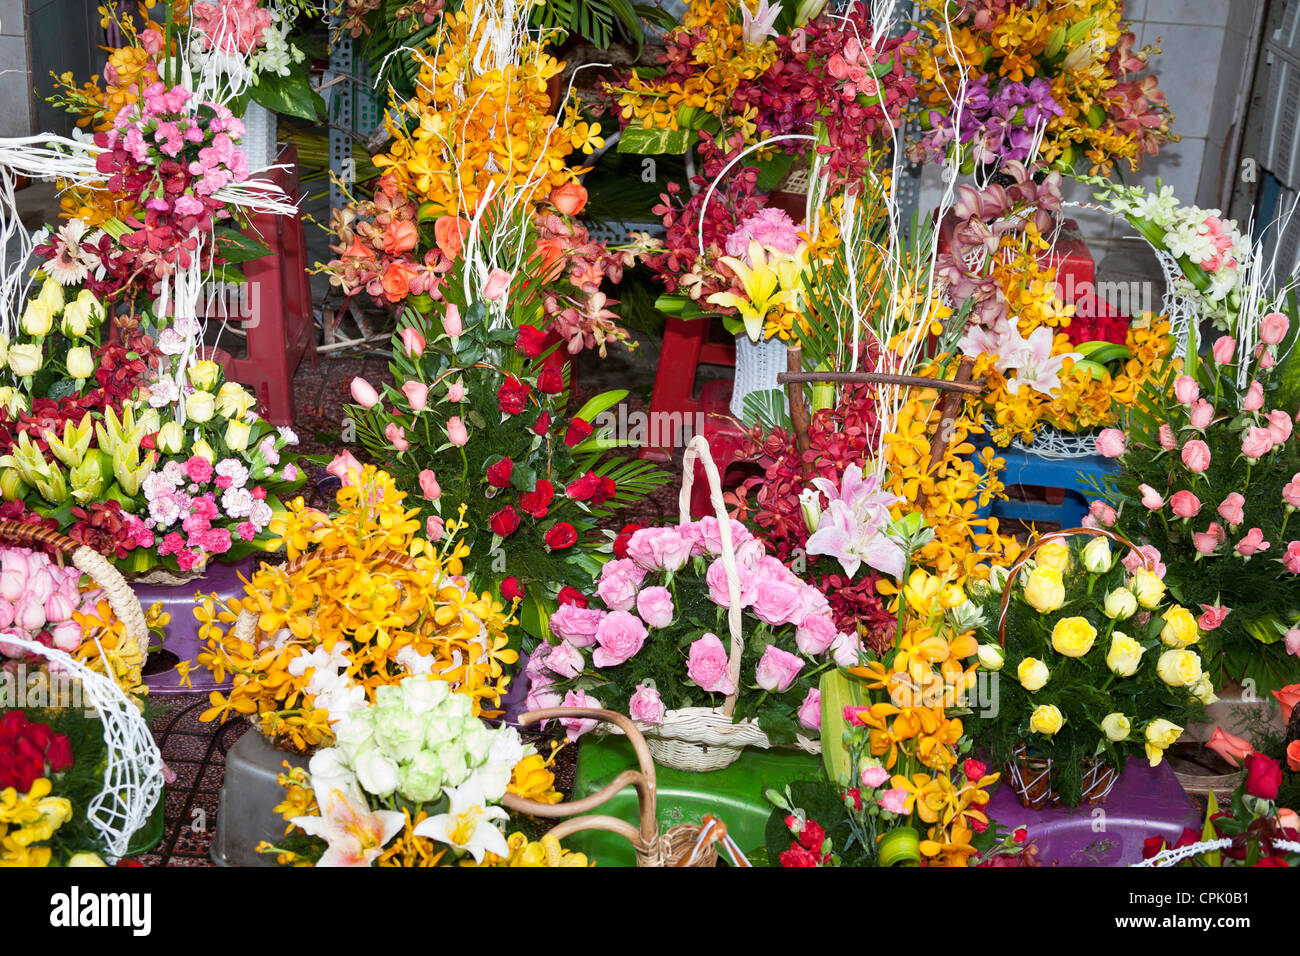 Many flowers bouquets stock photos many flowers bouquets stock colourful bouquets of flowers for sale outside ben thanh market ho chi minh city izmirmasajfo